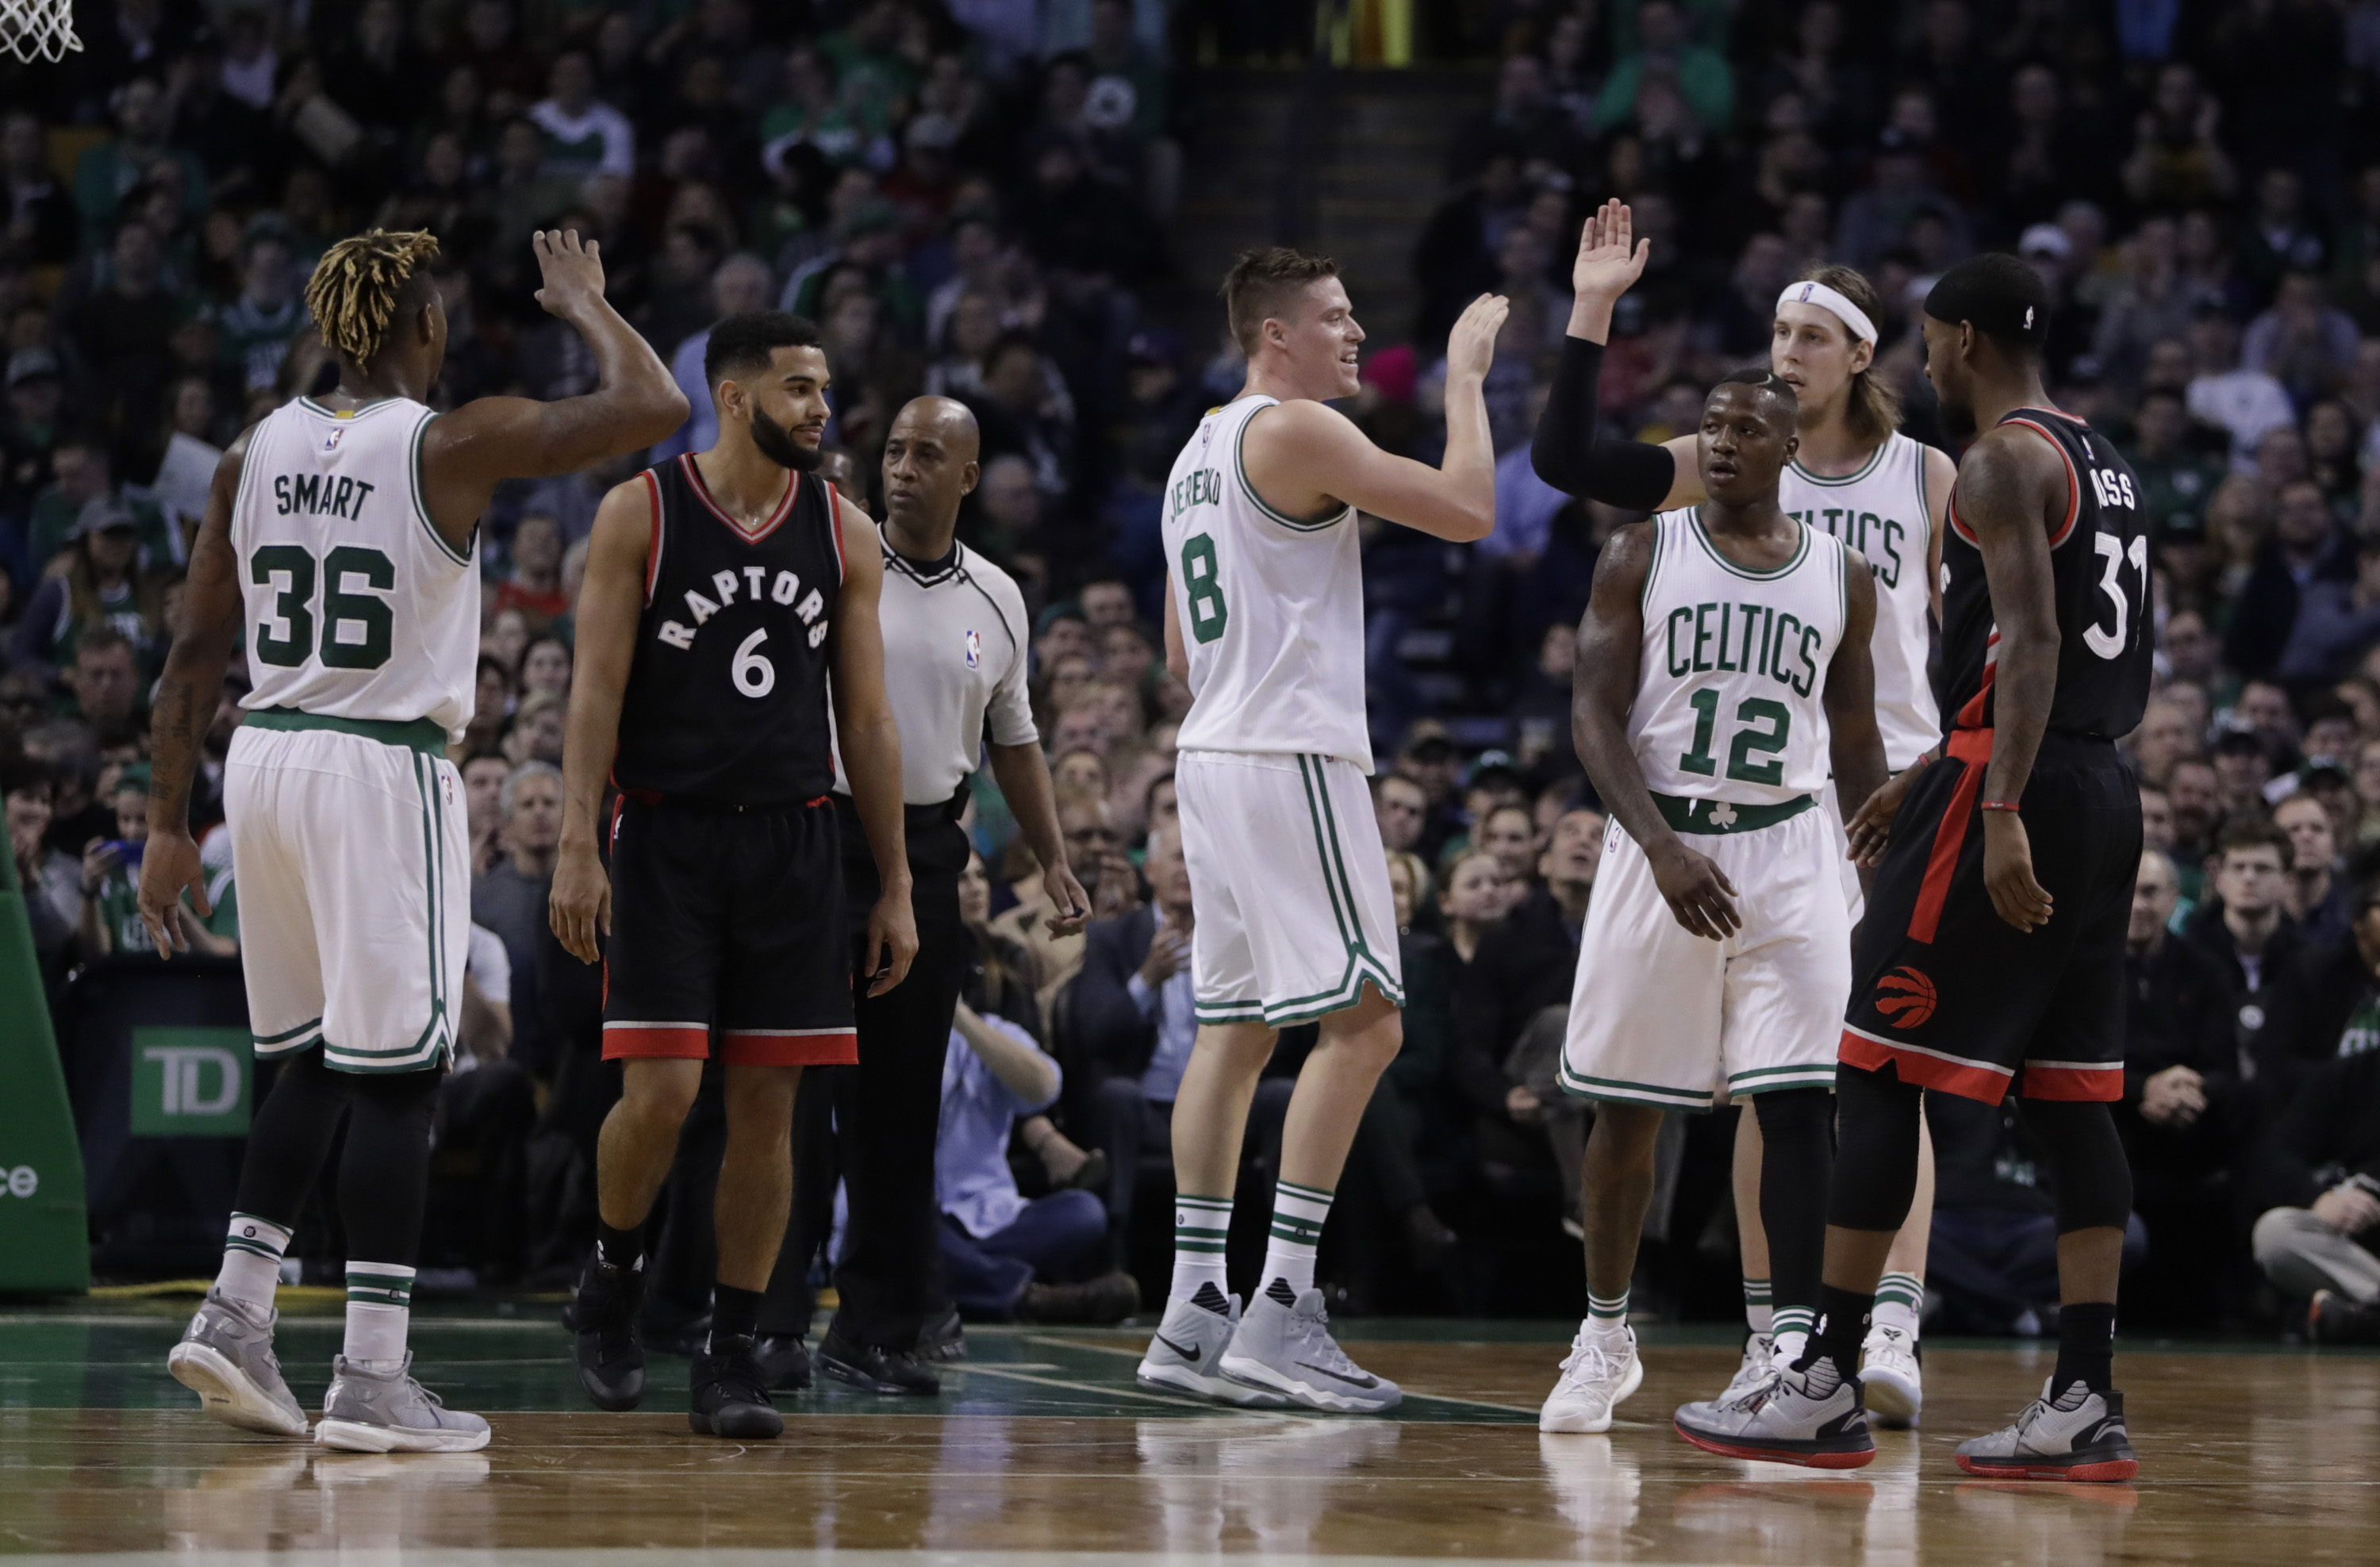 Celtics 112, Bucks 94: Reserves stay close until fourth quarter